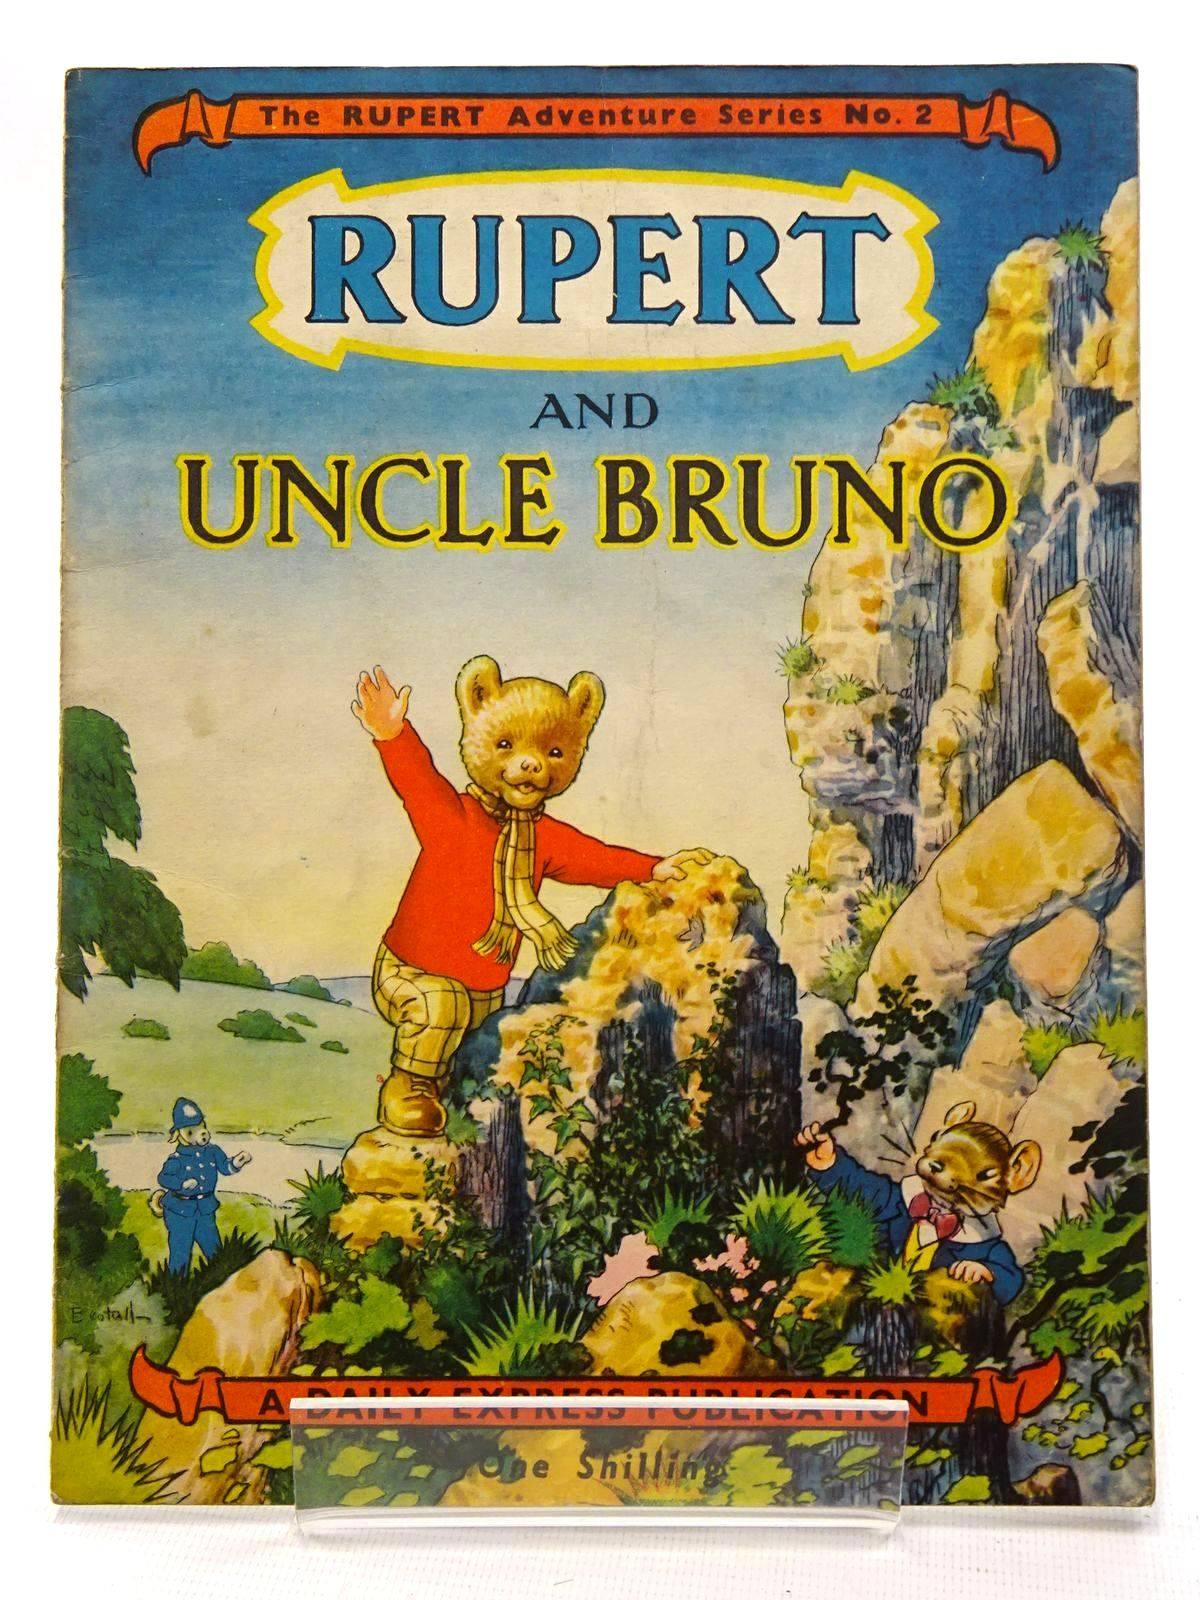 Photo of RUPERT ADVENTURE SERIES No. 2 - RUPERT AND UNCLE BRUNO written by Bestall, Alfred illustrated by Bestall, Alfred published by Daily Express (STOCK CODE: 2125104)  for sale by Stella & Rose's Books